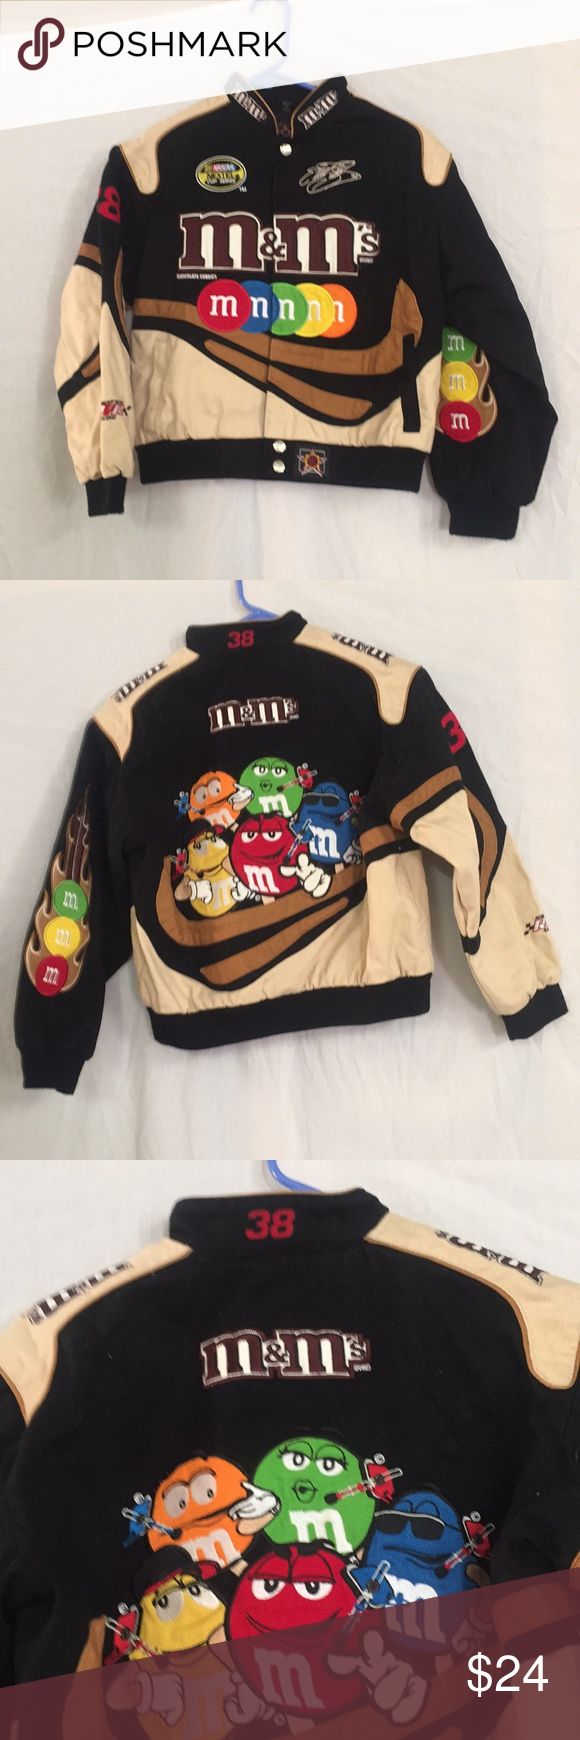 Child's M&M NASCAR Jacket, Size Large Child's M&M nascar Jacket byJH Design. It is a size large. Chest measures 36 inches and collar to hem is 20 inches. It has number 38 and has a signature on front. It is in good shape. Good jacket. JH Design Jackets & Coats